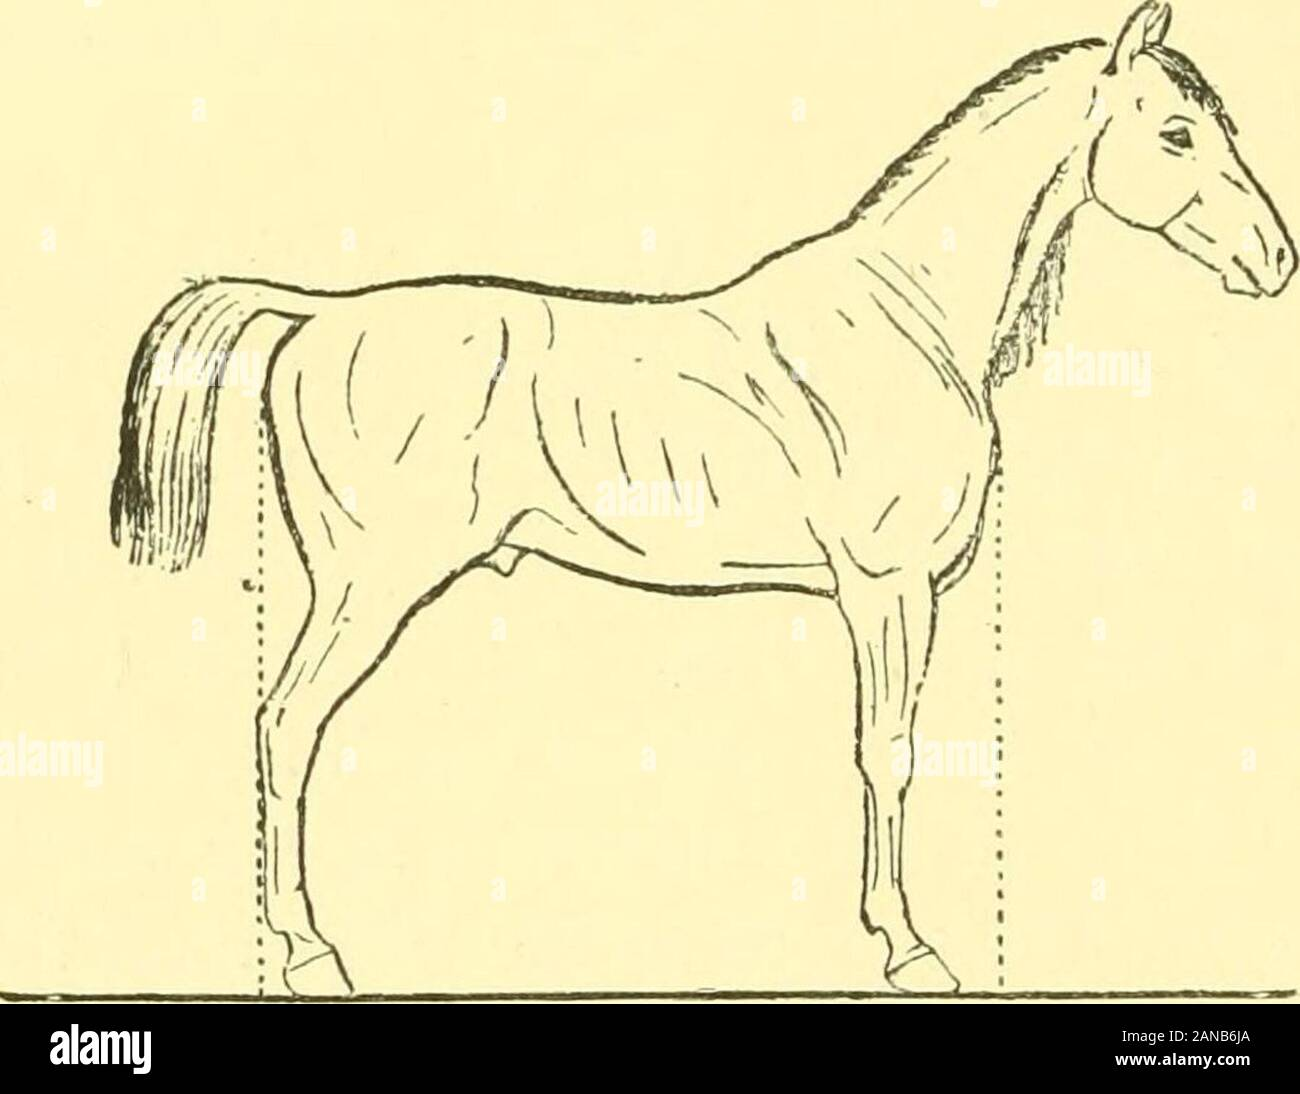 The Points Of The Horse A Familiar Treatise On Equine Conformation The Point Of The Hock If One Hind Foot Be Placed In Front Of The Other Hind Foot The Vertical Line